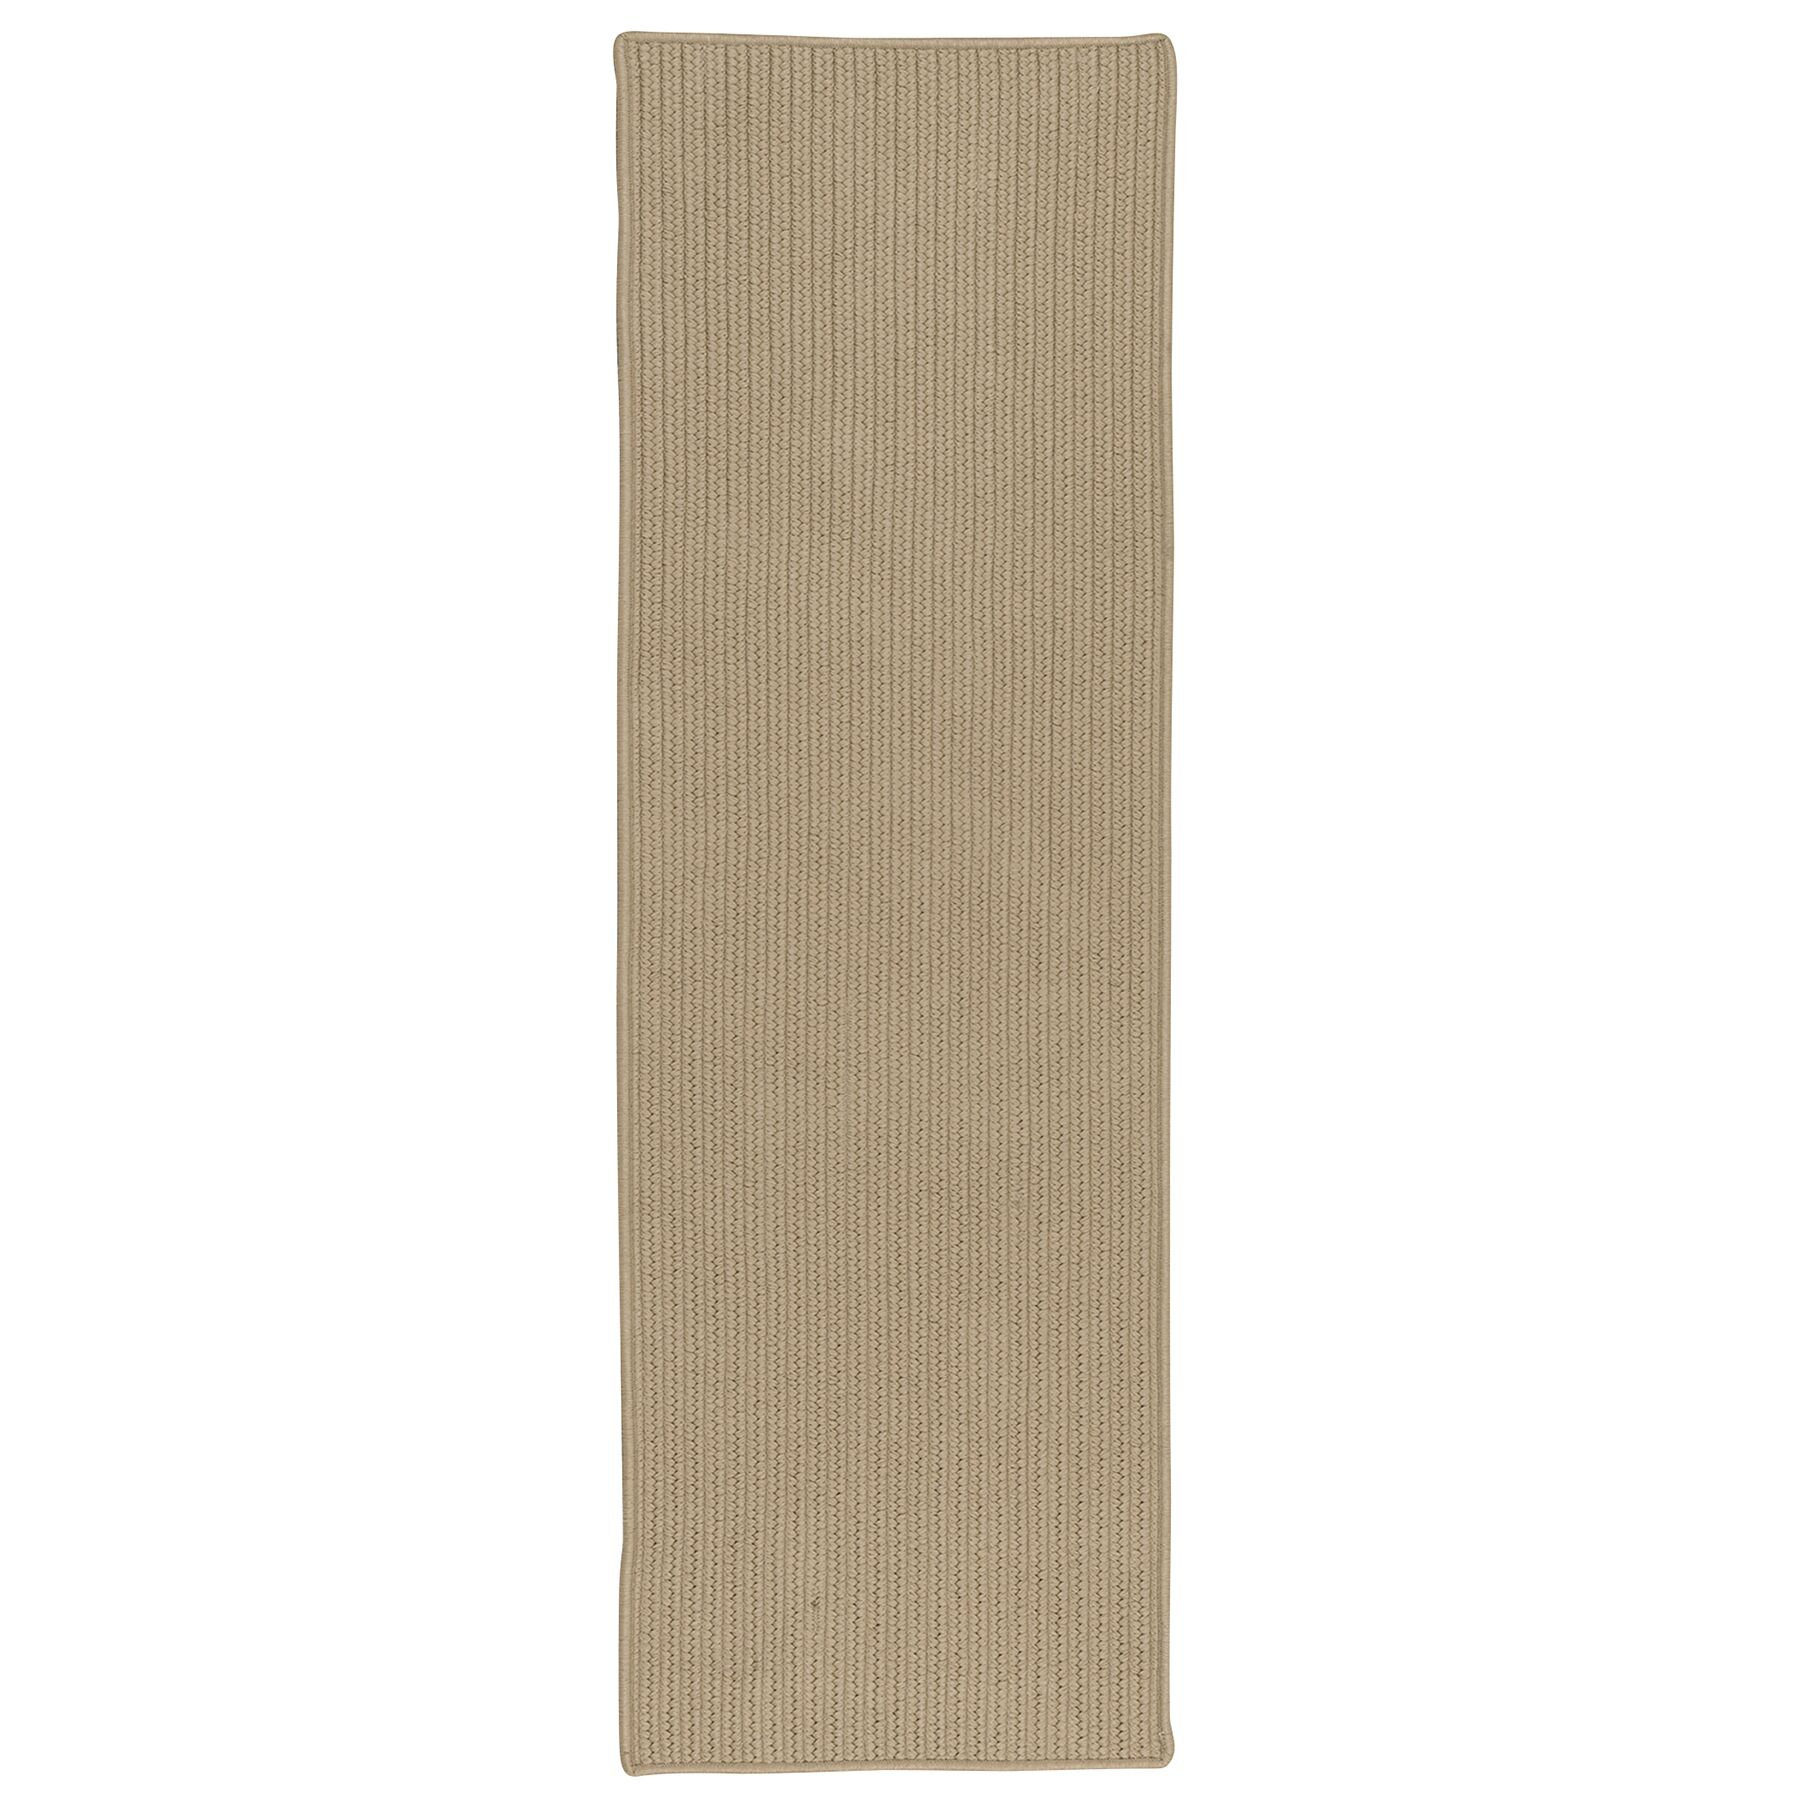 Cheyanne All-Purpose Mudroom Hand-Braided Natural Area Rug Rug Size: Runner 2'5